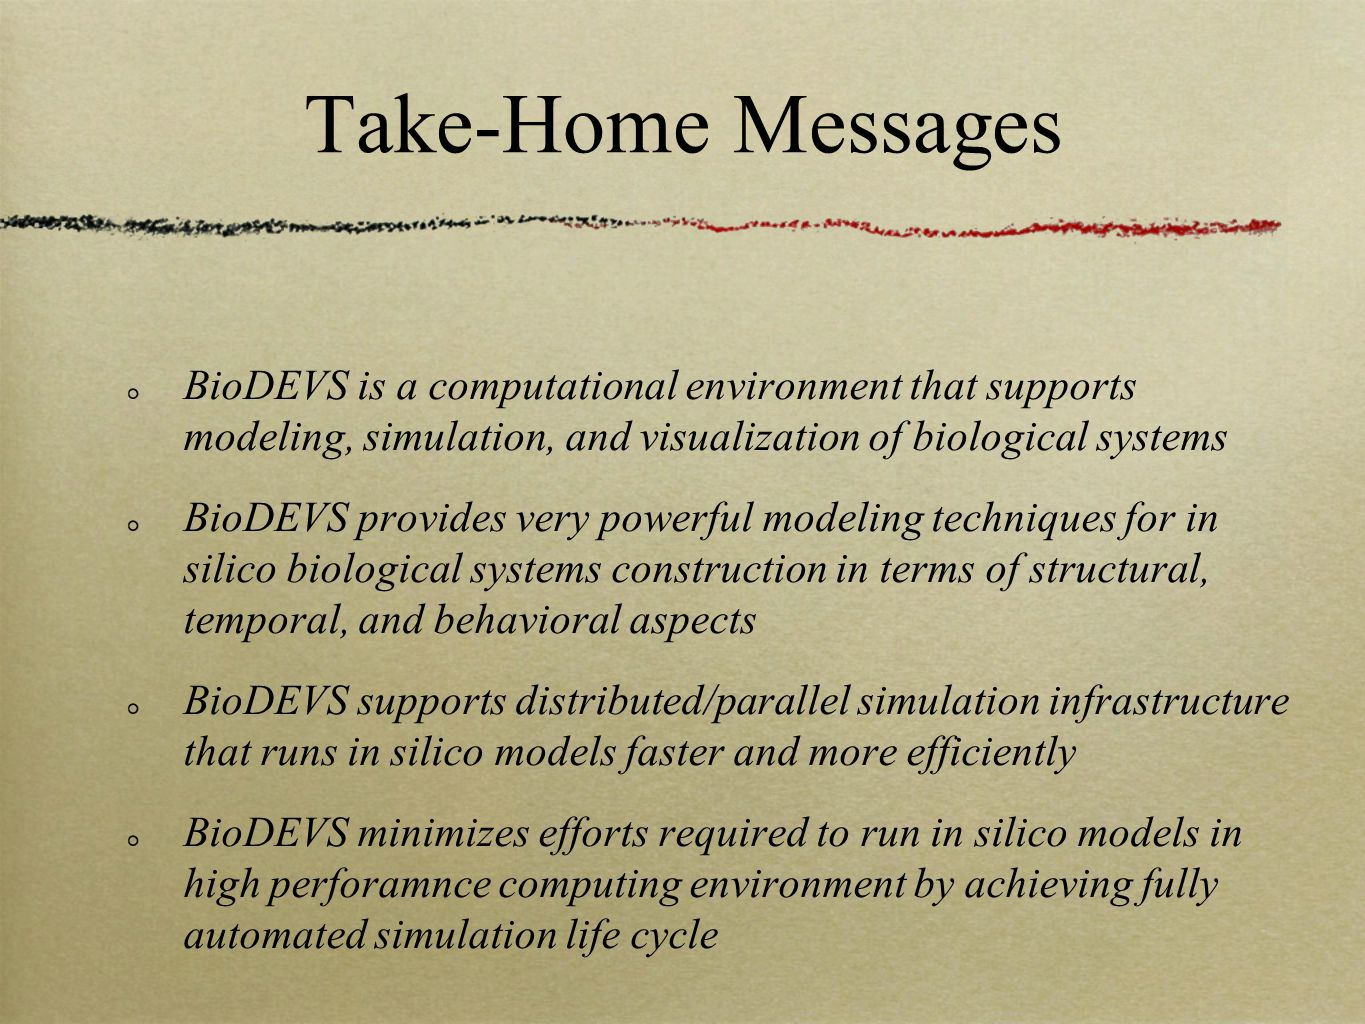 Take-Home Messages BioDEVS is a computational environment that supports modeling, simulation, and visualization of biological systems BioDEVS provides very powerful modeling techniques for in silico biological systems construction in terms of structural, temporal, and behavioral aspects BioDEVS supports distributed/parallel simulation infrastructure that runs in silico models faster and more efficiently BioDEVS minimizes efforts required to run in silico models in high perforamnce computing environment by achieving fully automated simulation life cycle